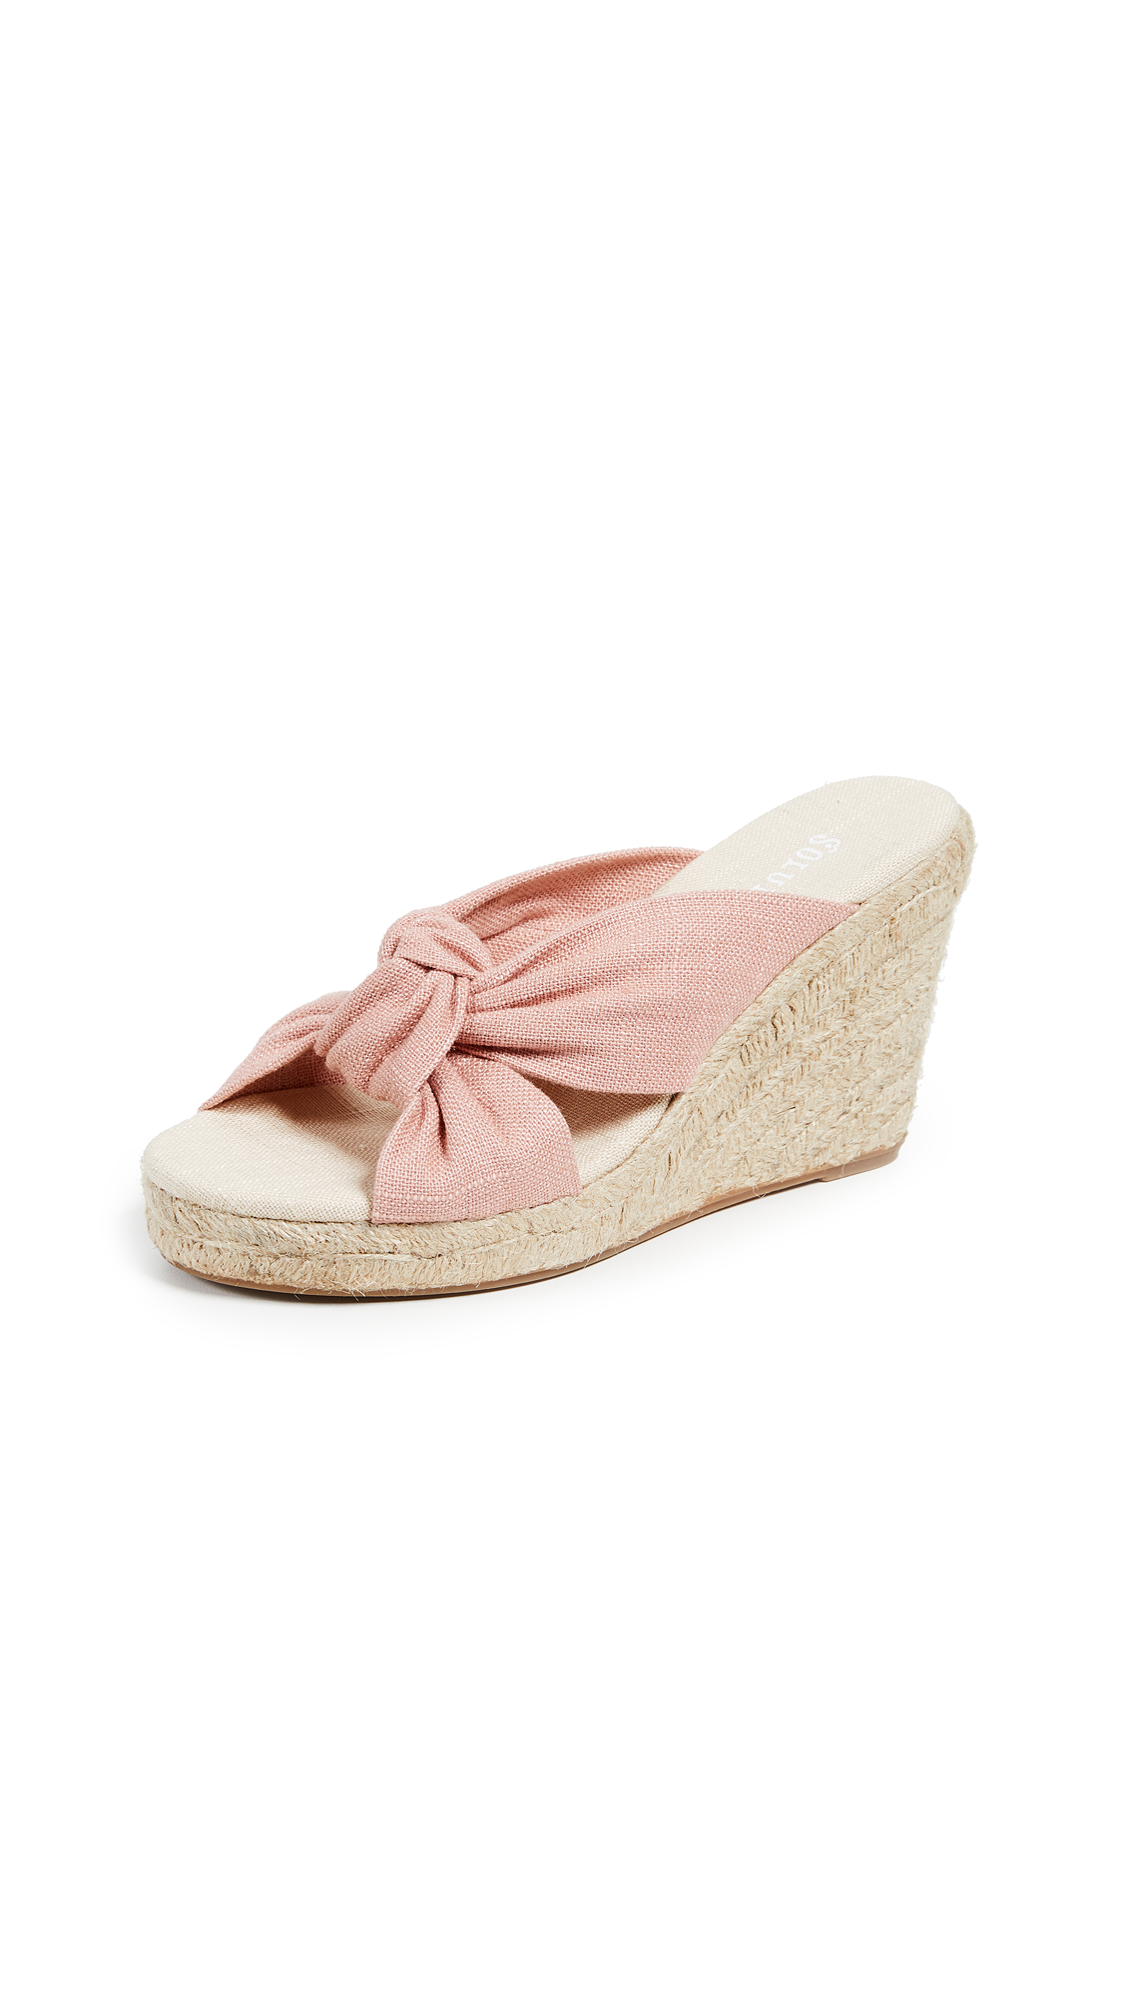 Soludos Knotted Wedge Espadrilles - Dusty Rose